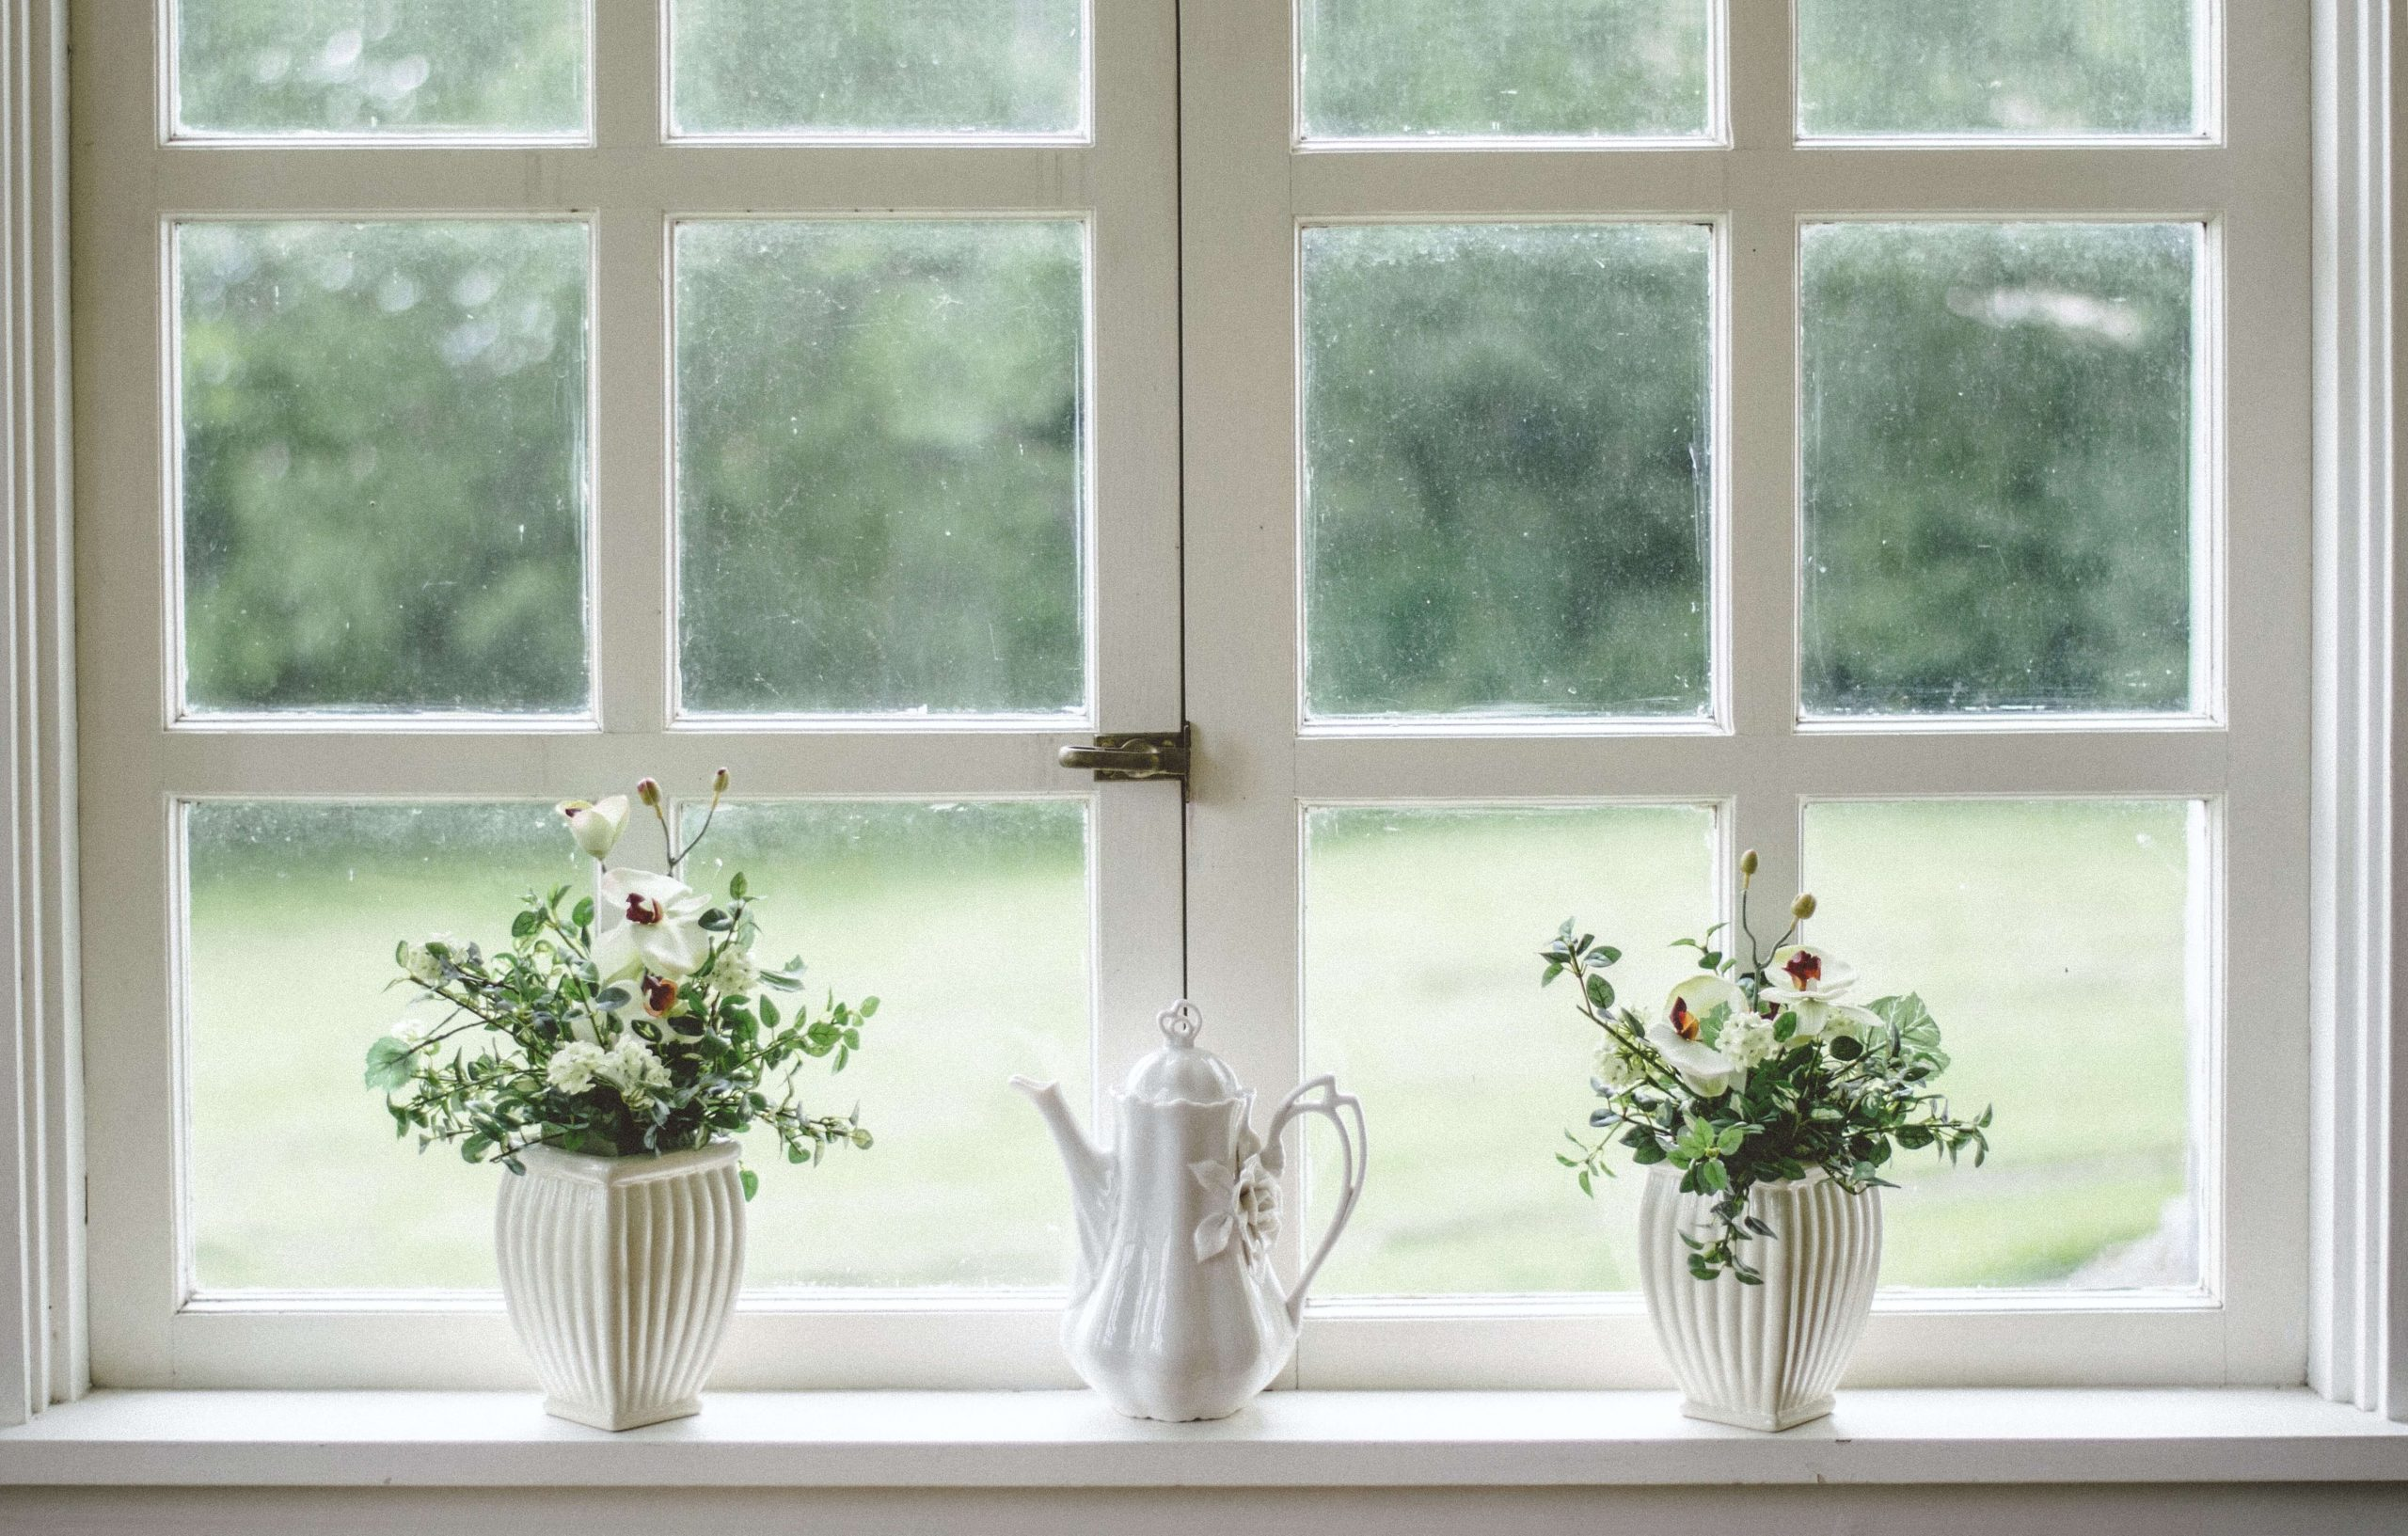 How to Choose Perfect Windows for Indoor